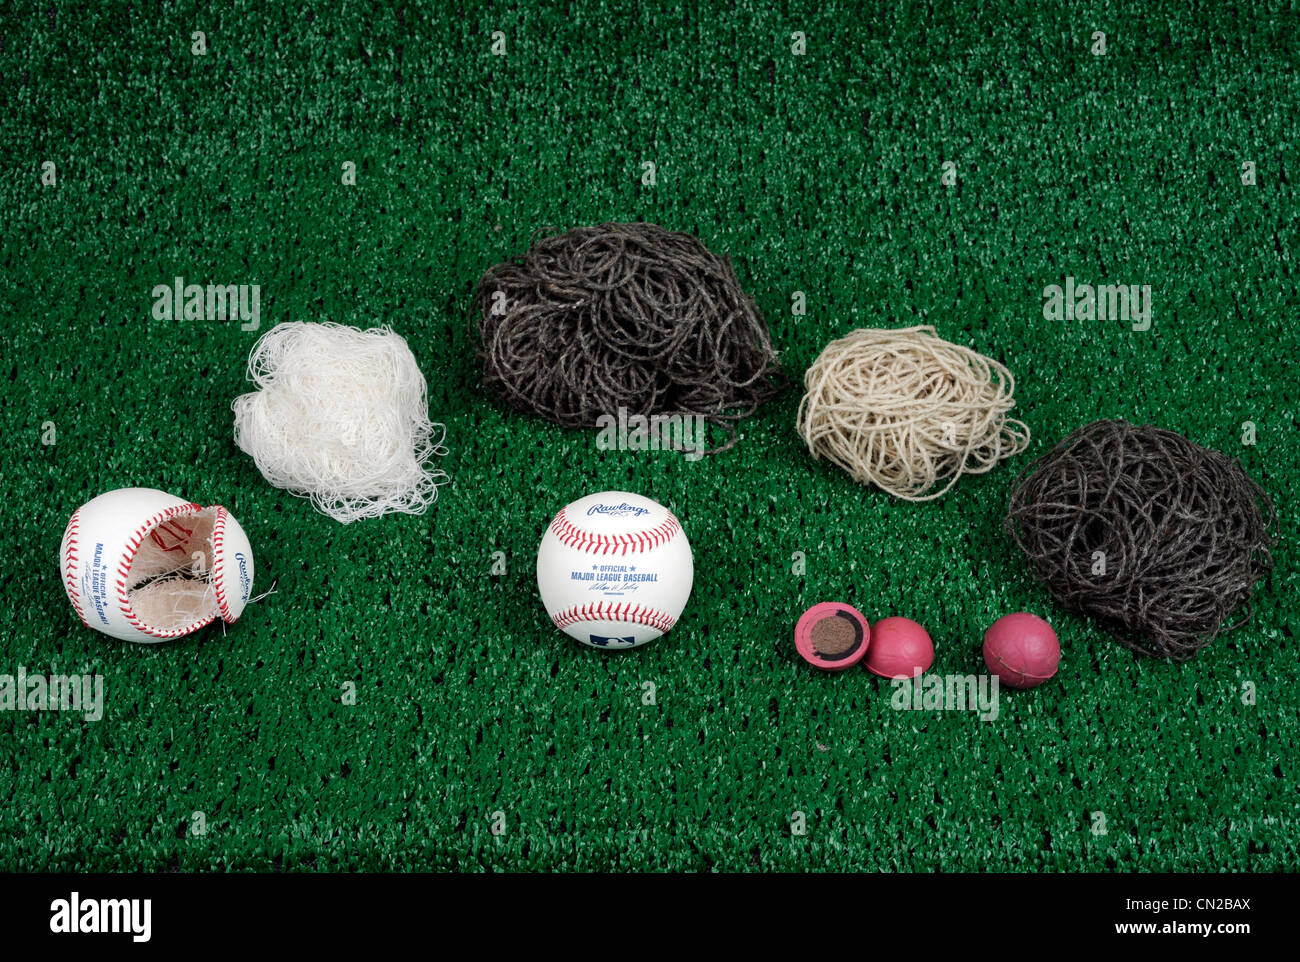 Deconstruction of a major league baseball made by Rawlings. - Stock Image